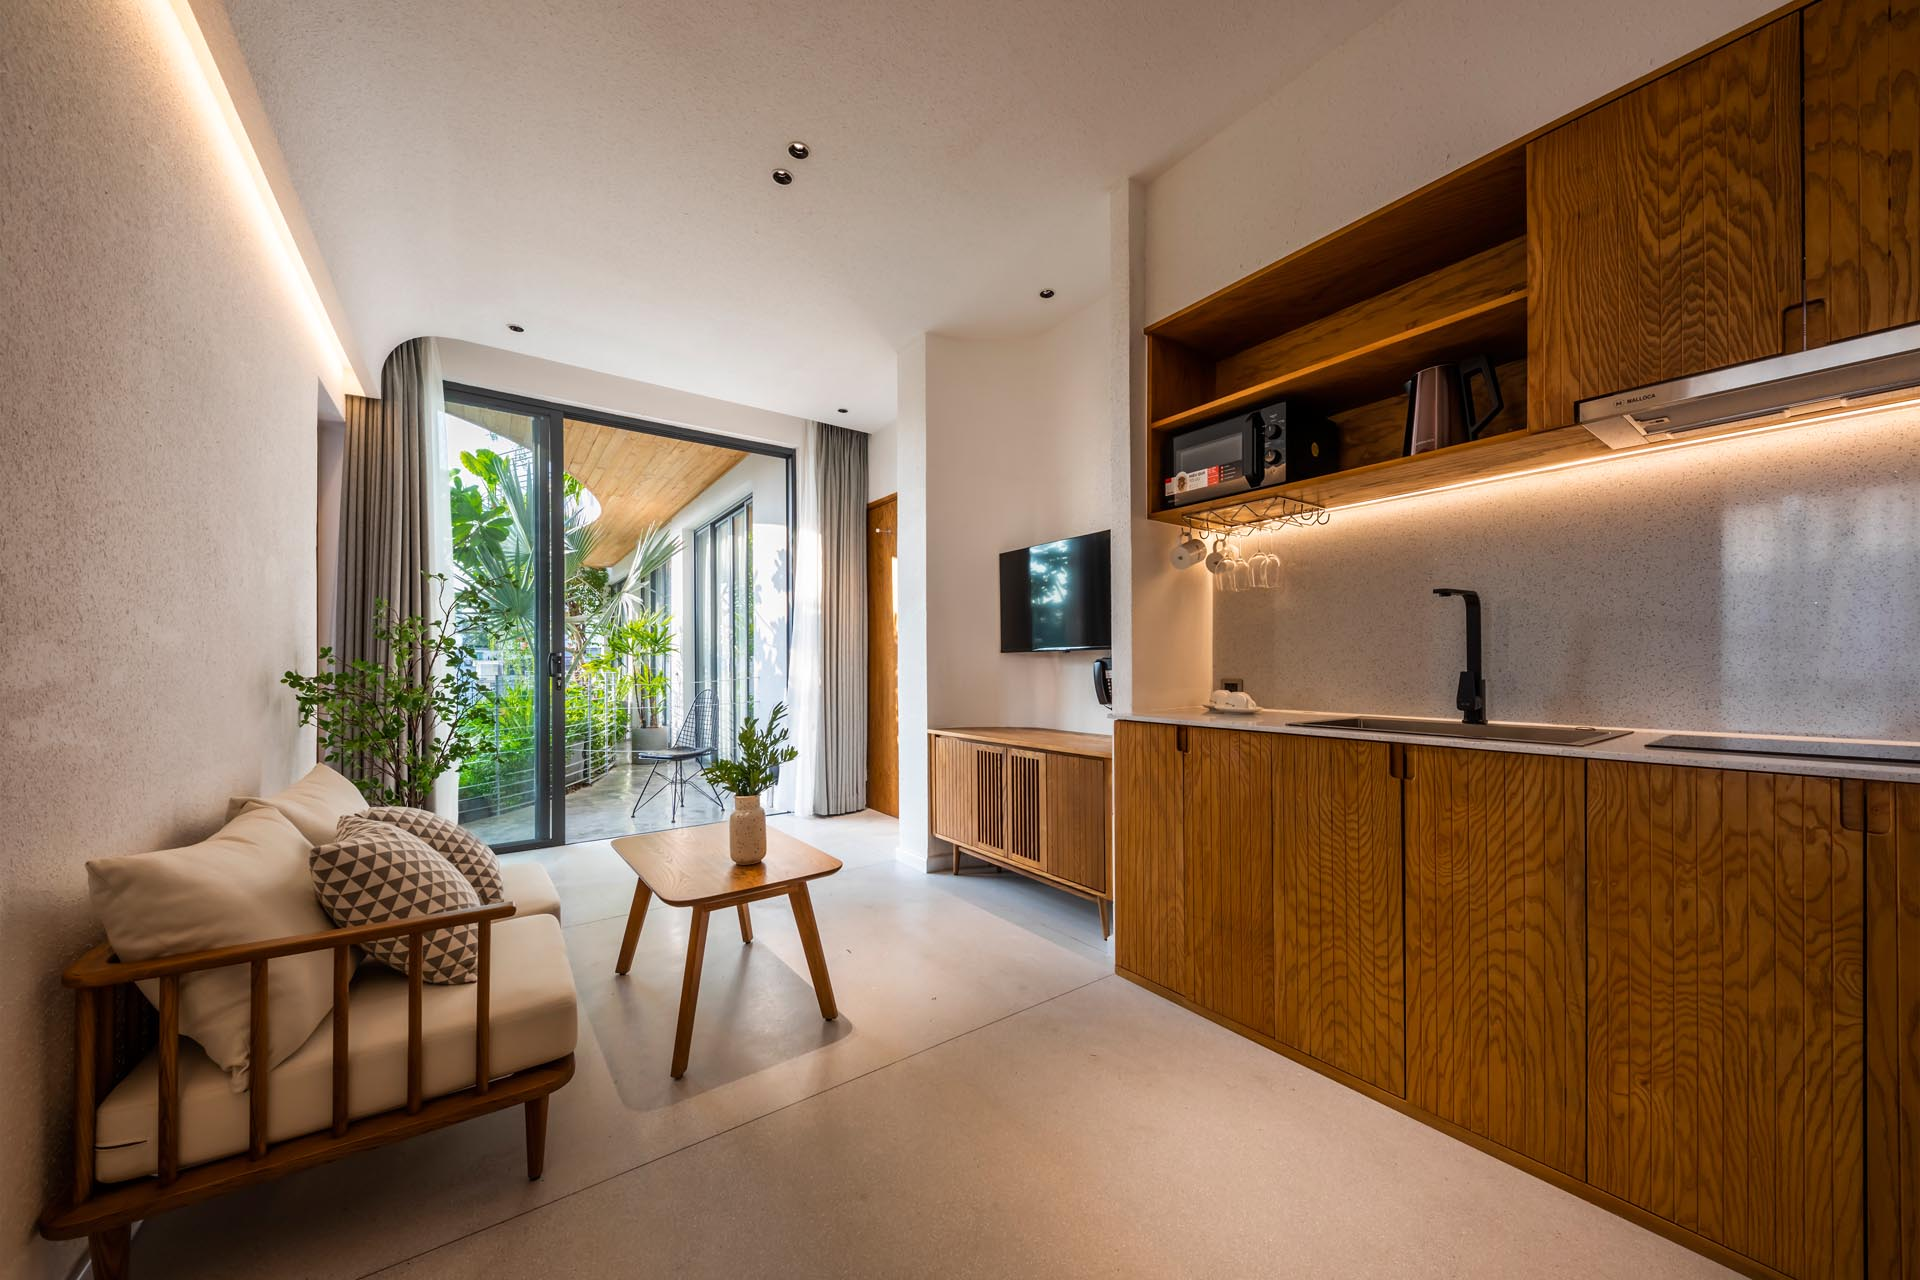 A minimalist apartment interior with LED lighting, a small living room, and kitchenette.